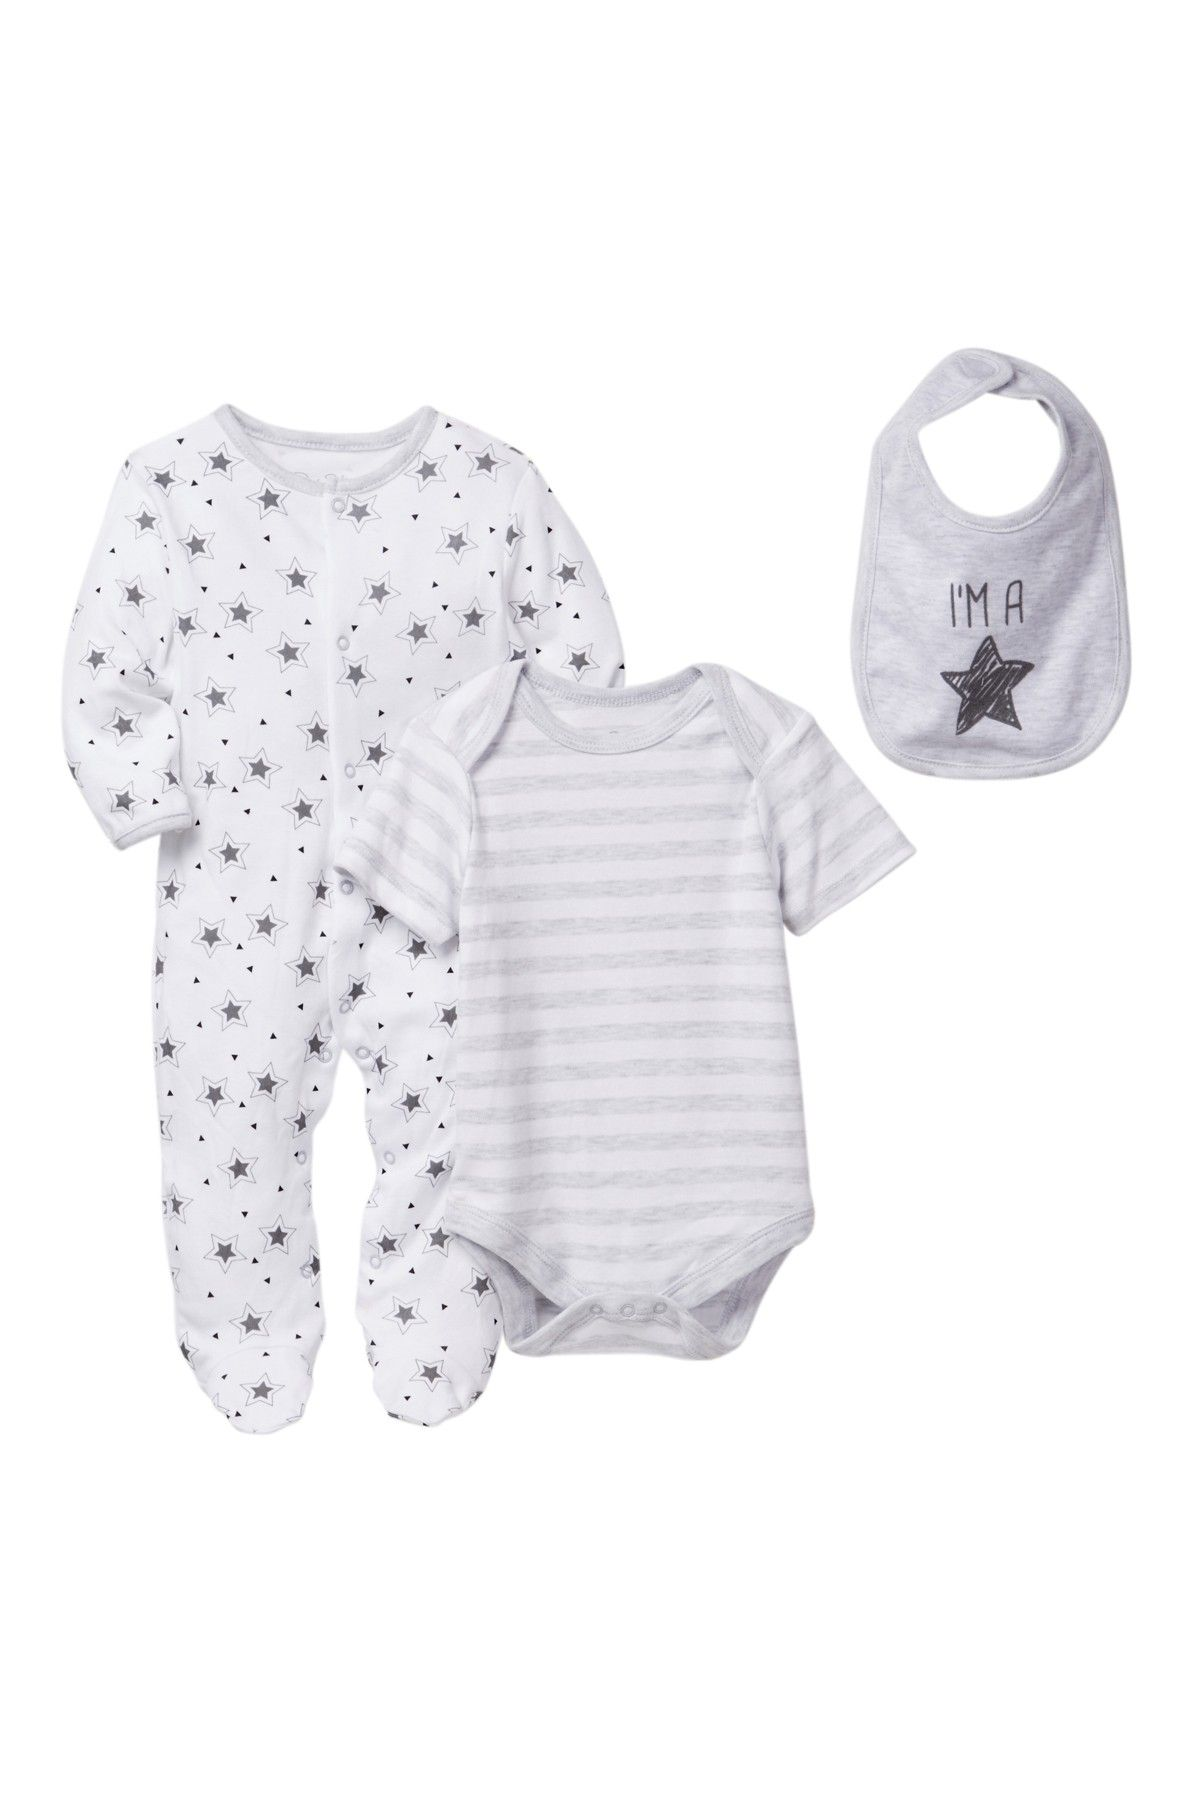 Rene Rofe Superstar Bodysuit Footie & Bib Set Baby Boys is now